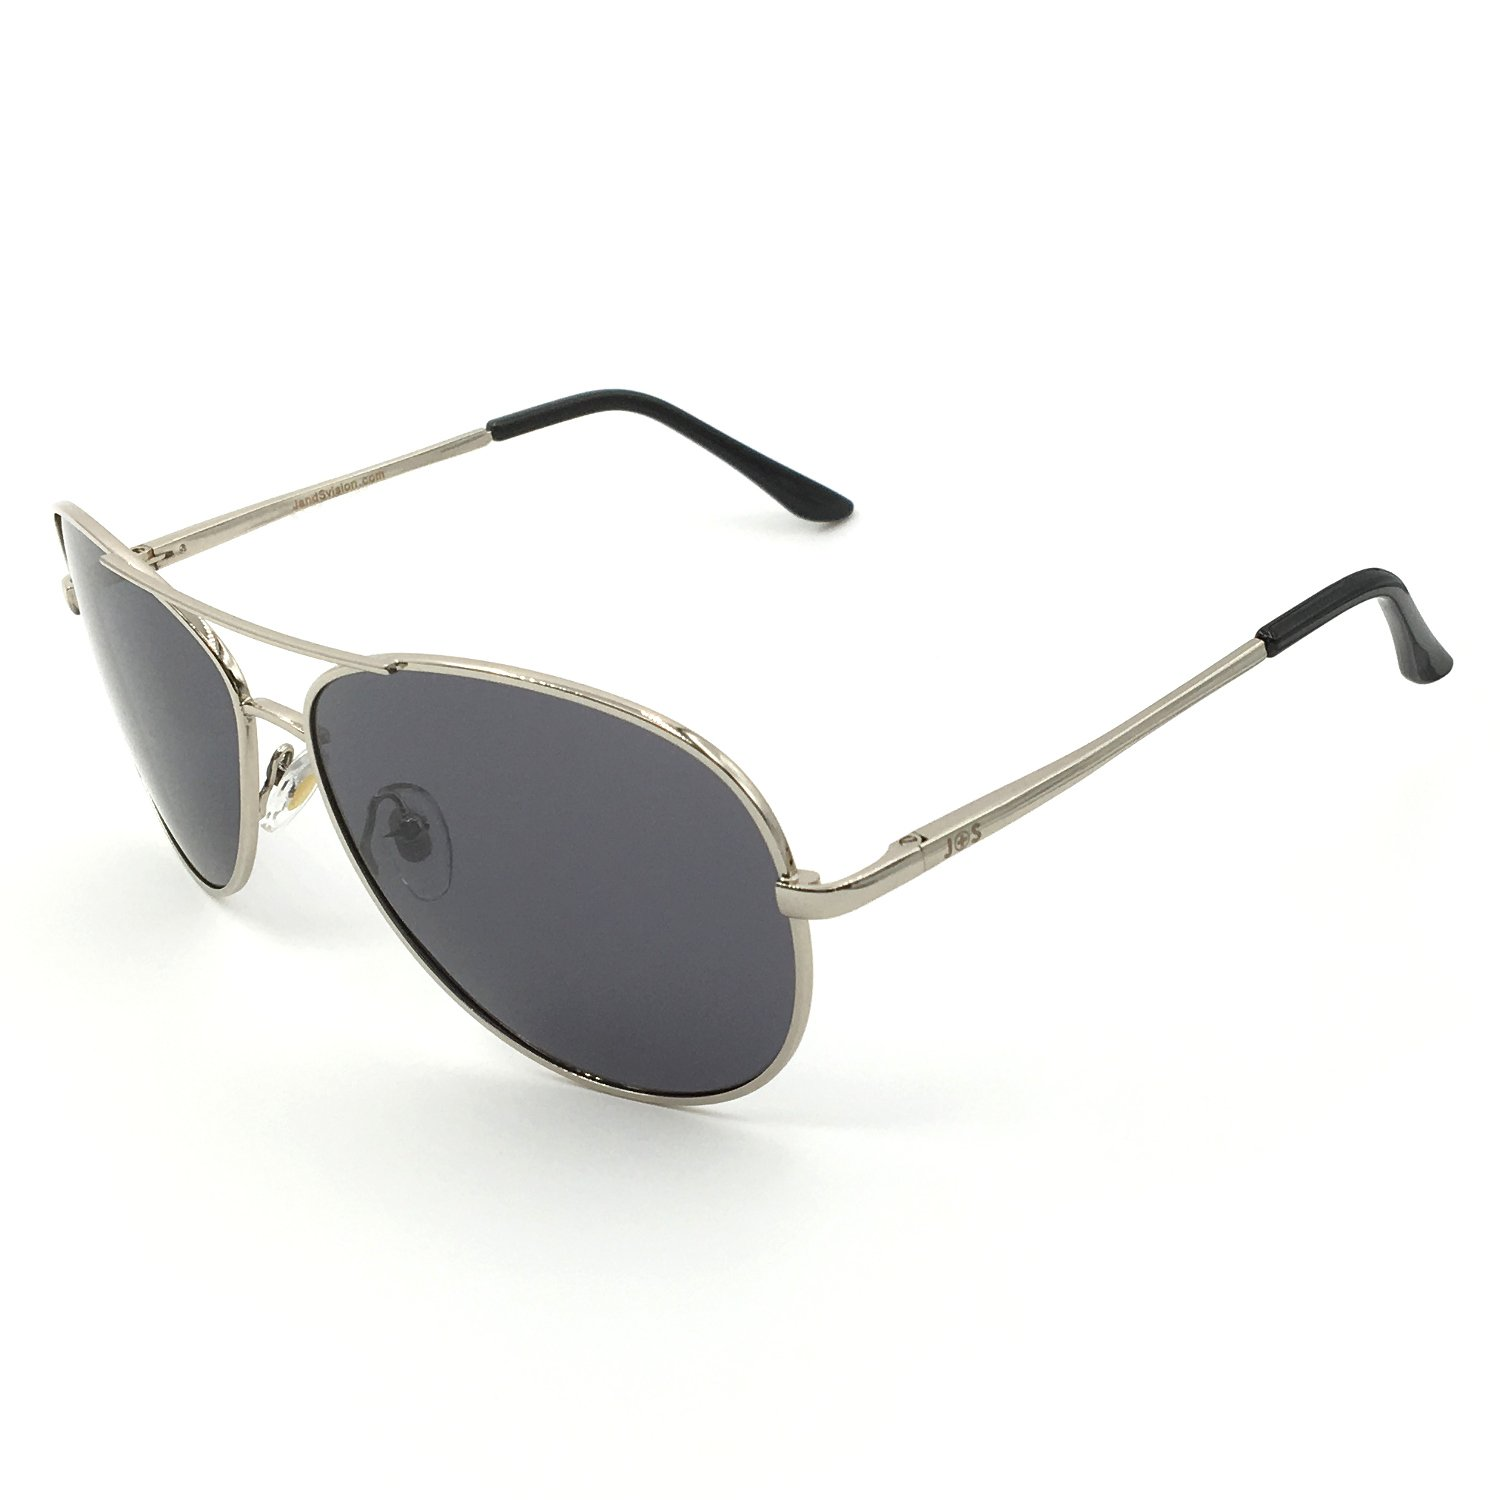 J+S Premium Military Style Classic Aviator Sunglasses, Polarized, 100% UV protection (Large Frame - Silver Frame/Gray Lens)